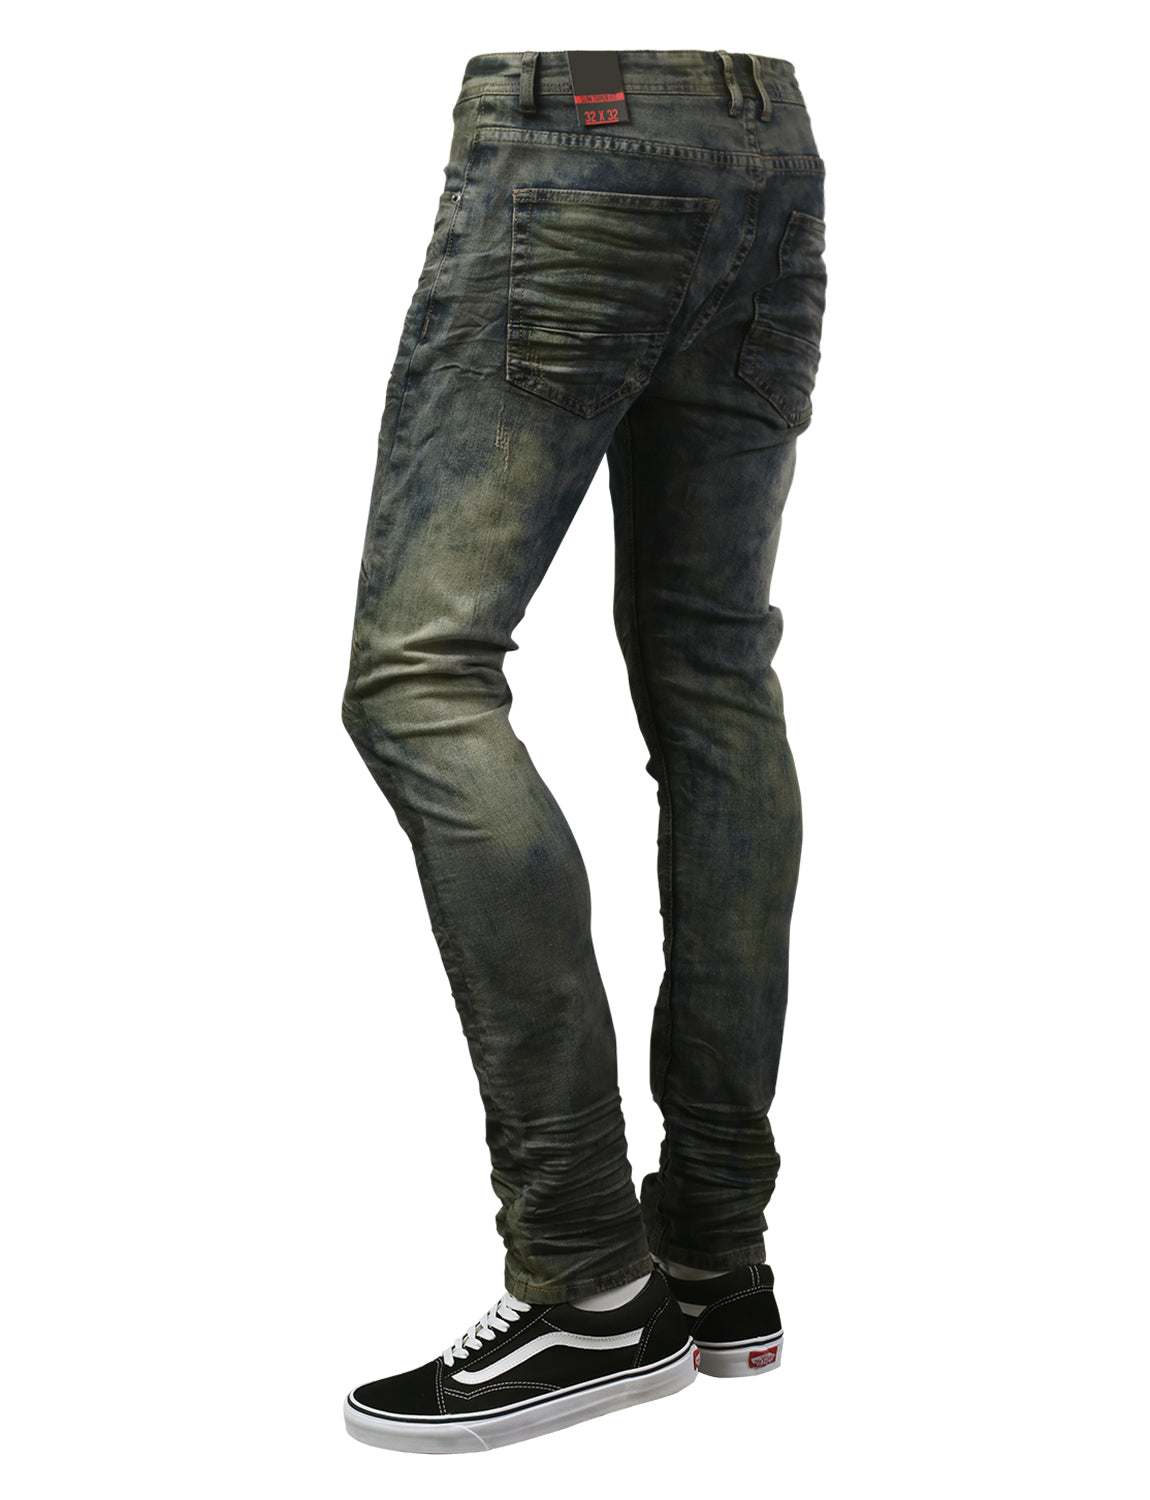 VINTAGE Basic Washed Denim Jeans - URBANCREWS